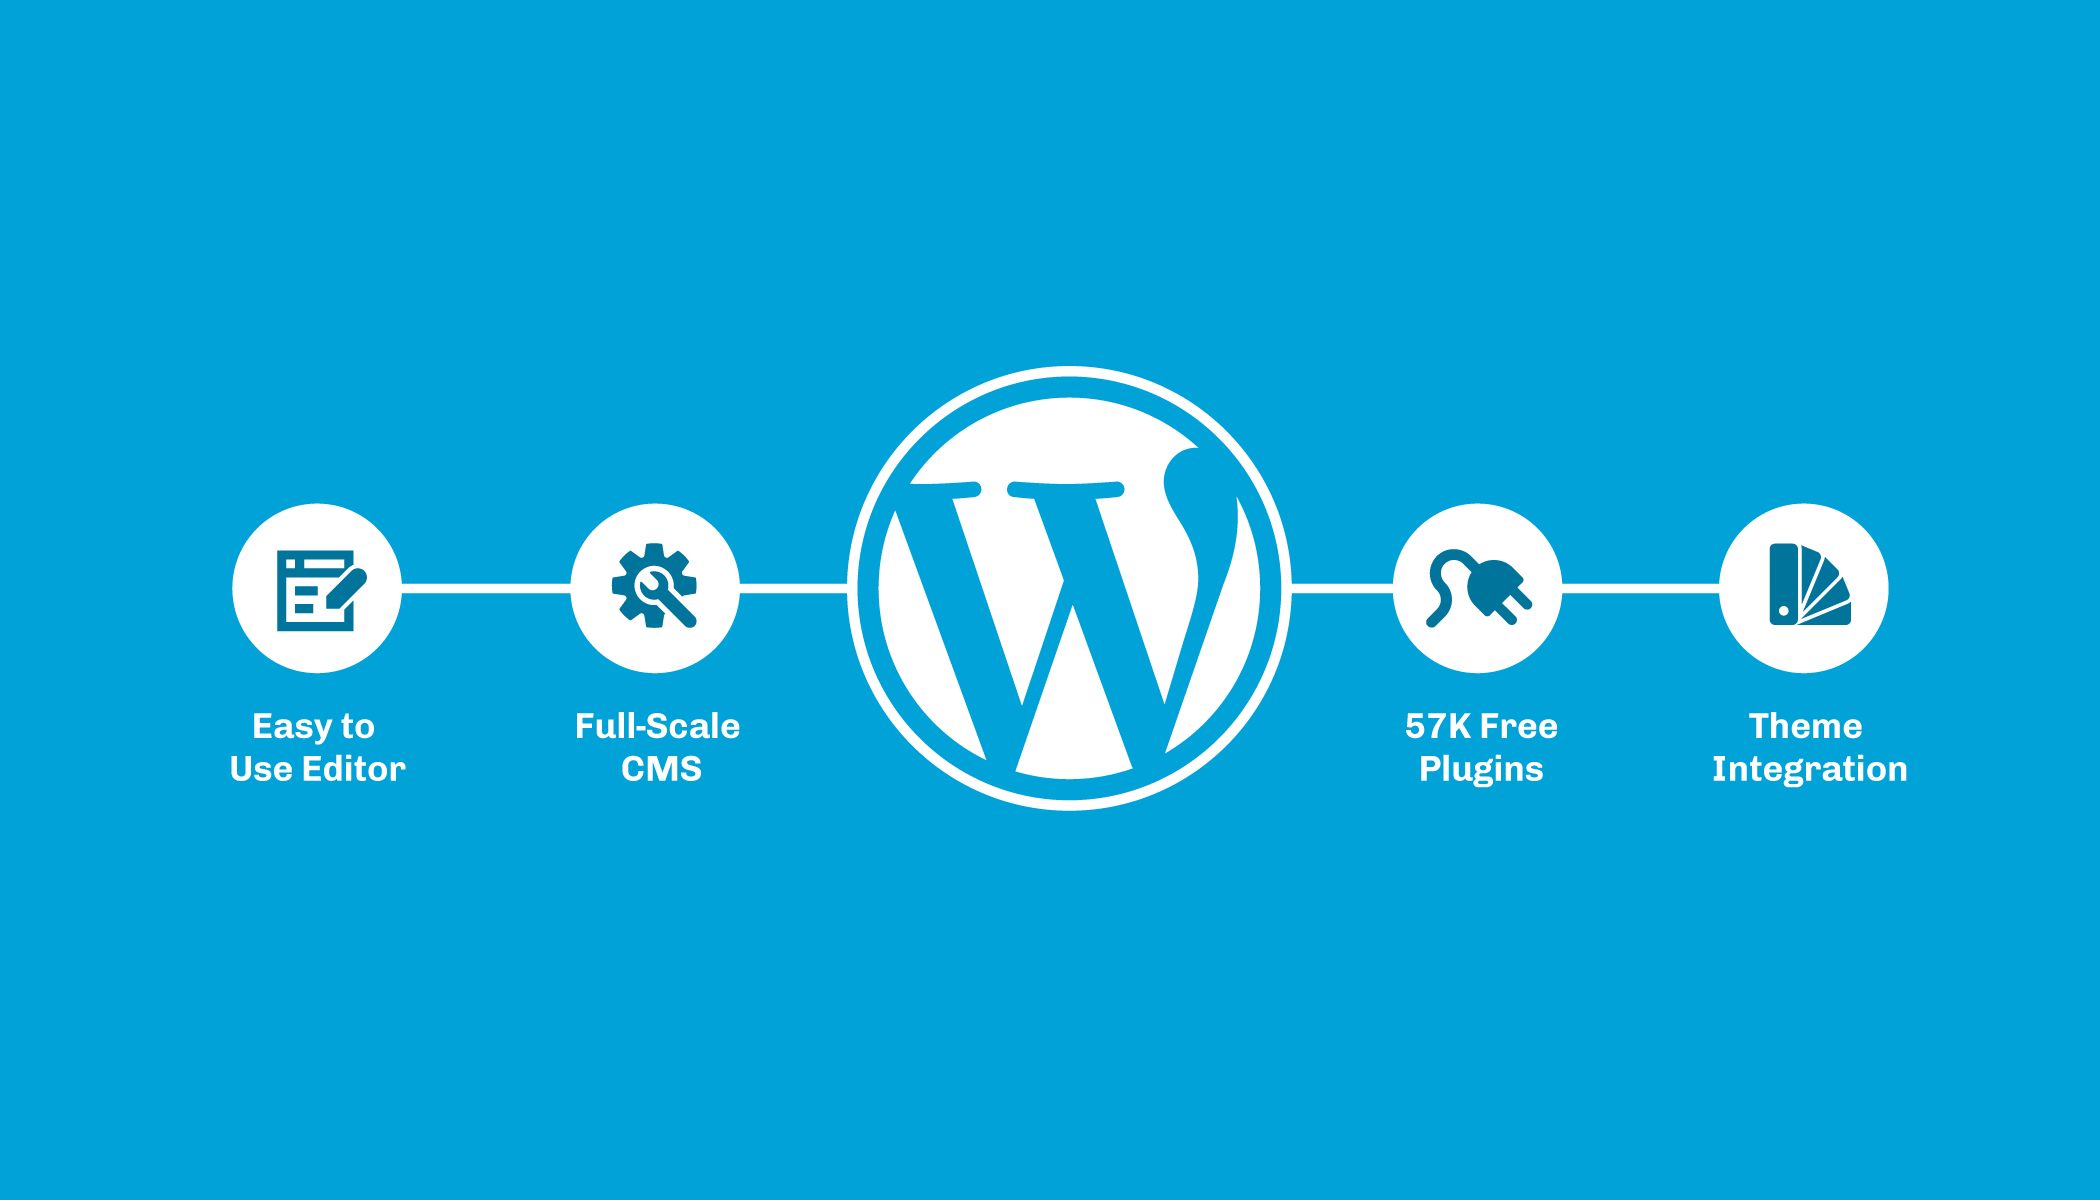 graphic showing four features of wordpress